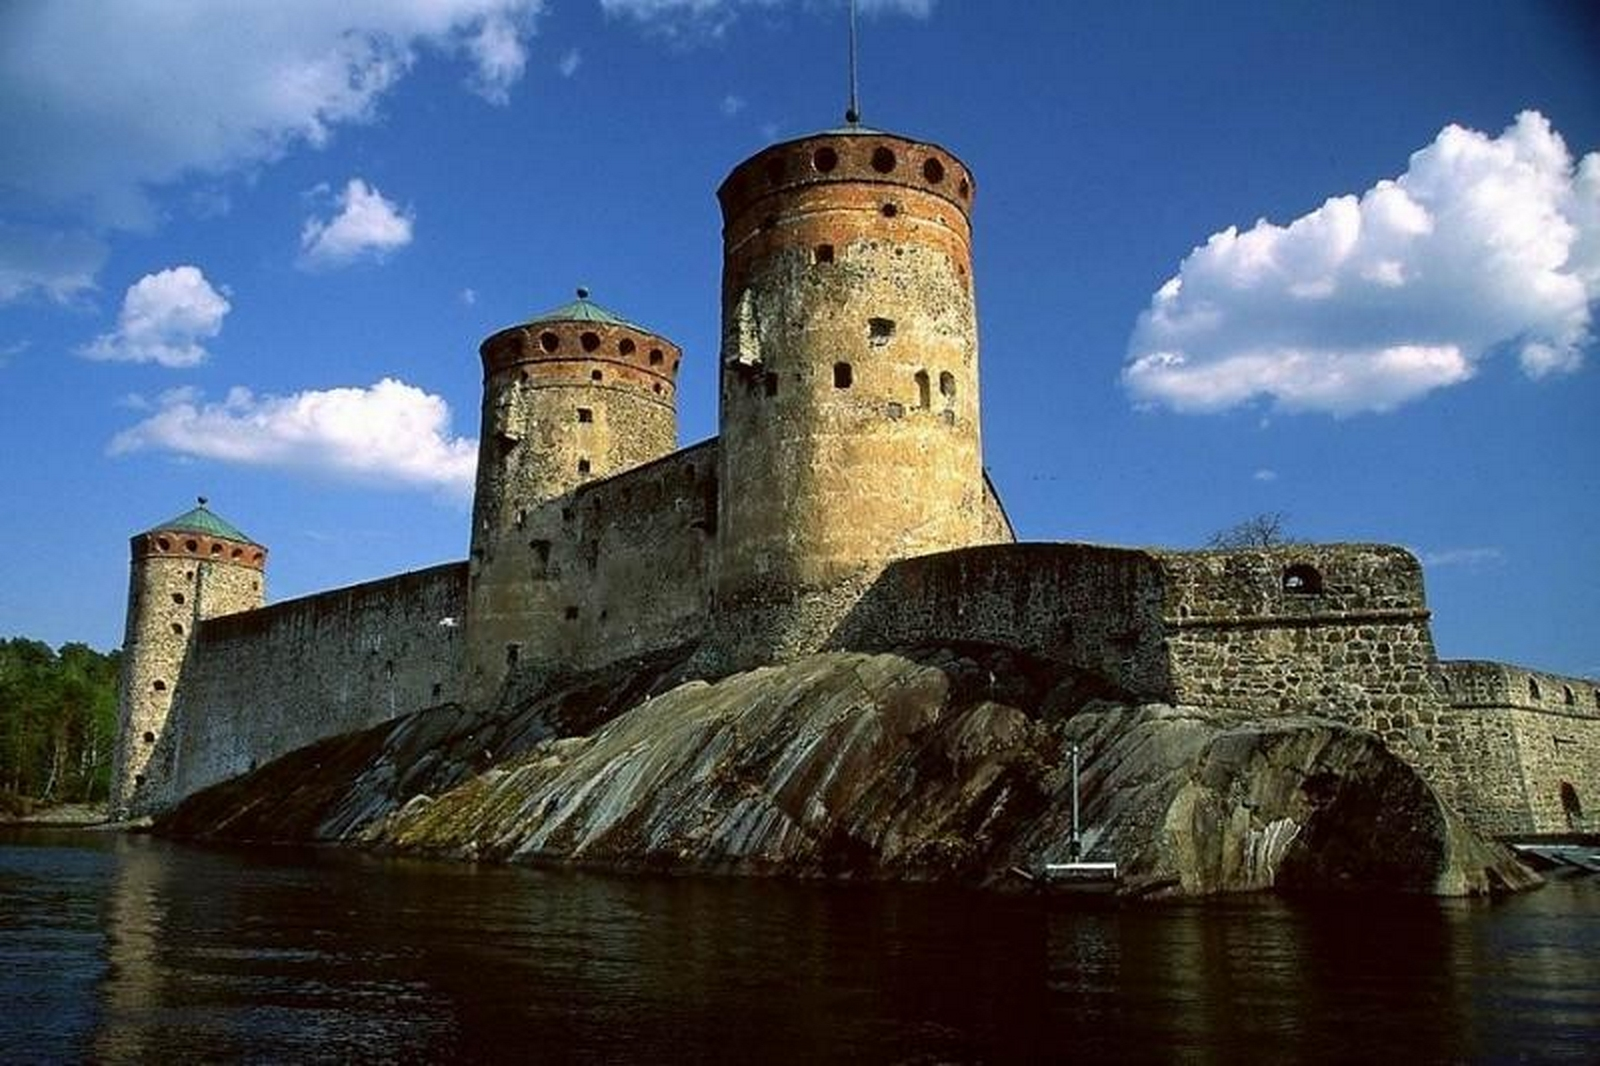 finland fin islamic banking ice tom thoughts norway castle russia index castles nature country rental sweden toms finland1 finish savonlinna